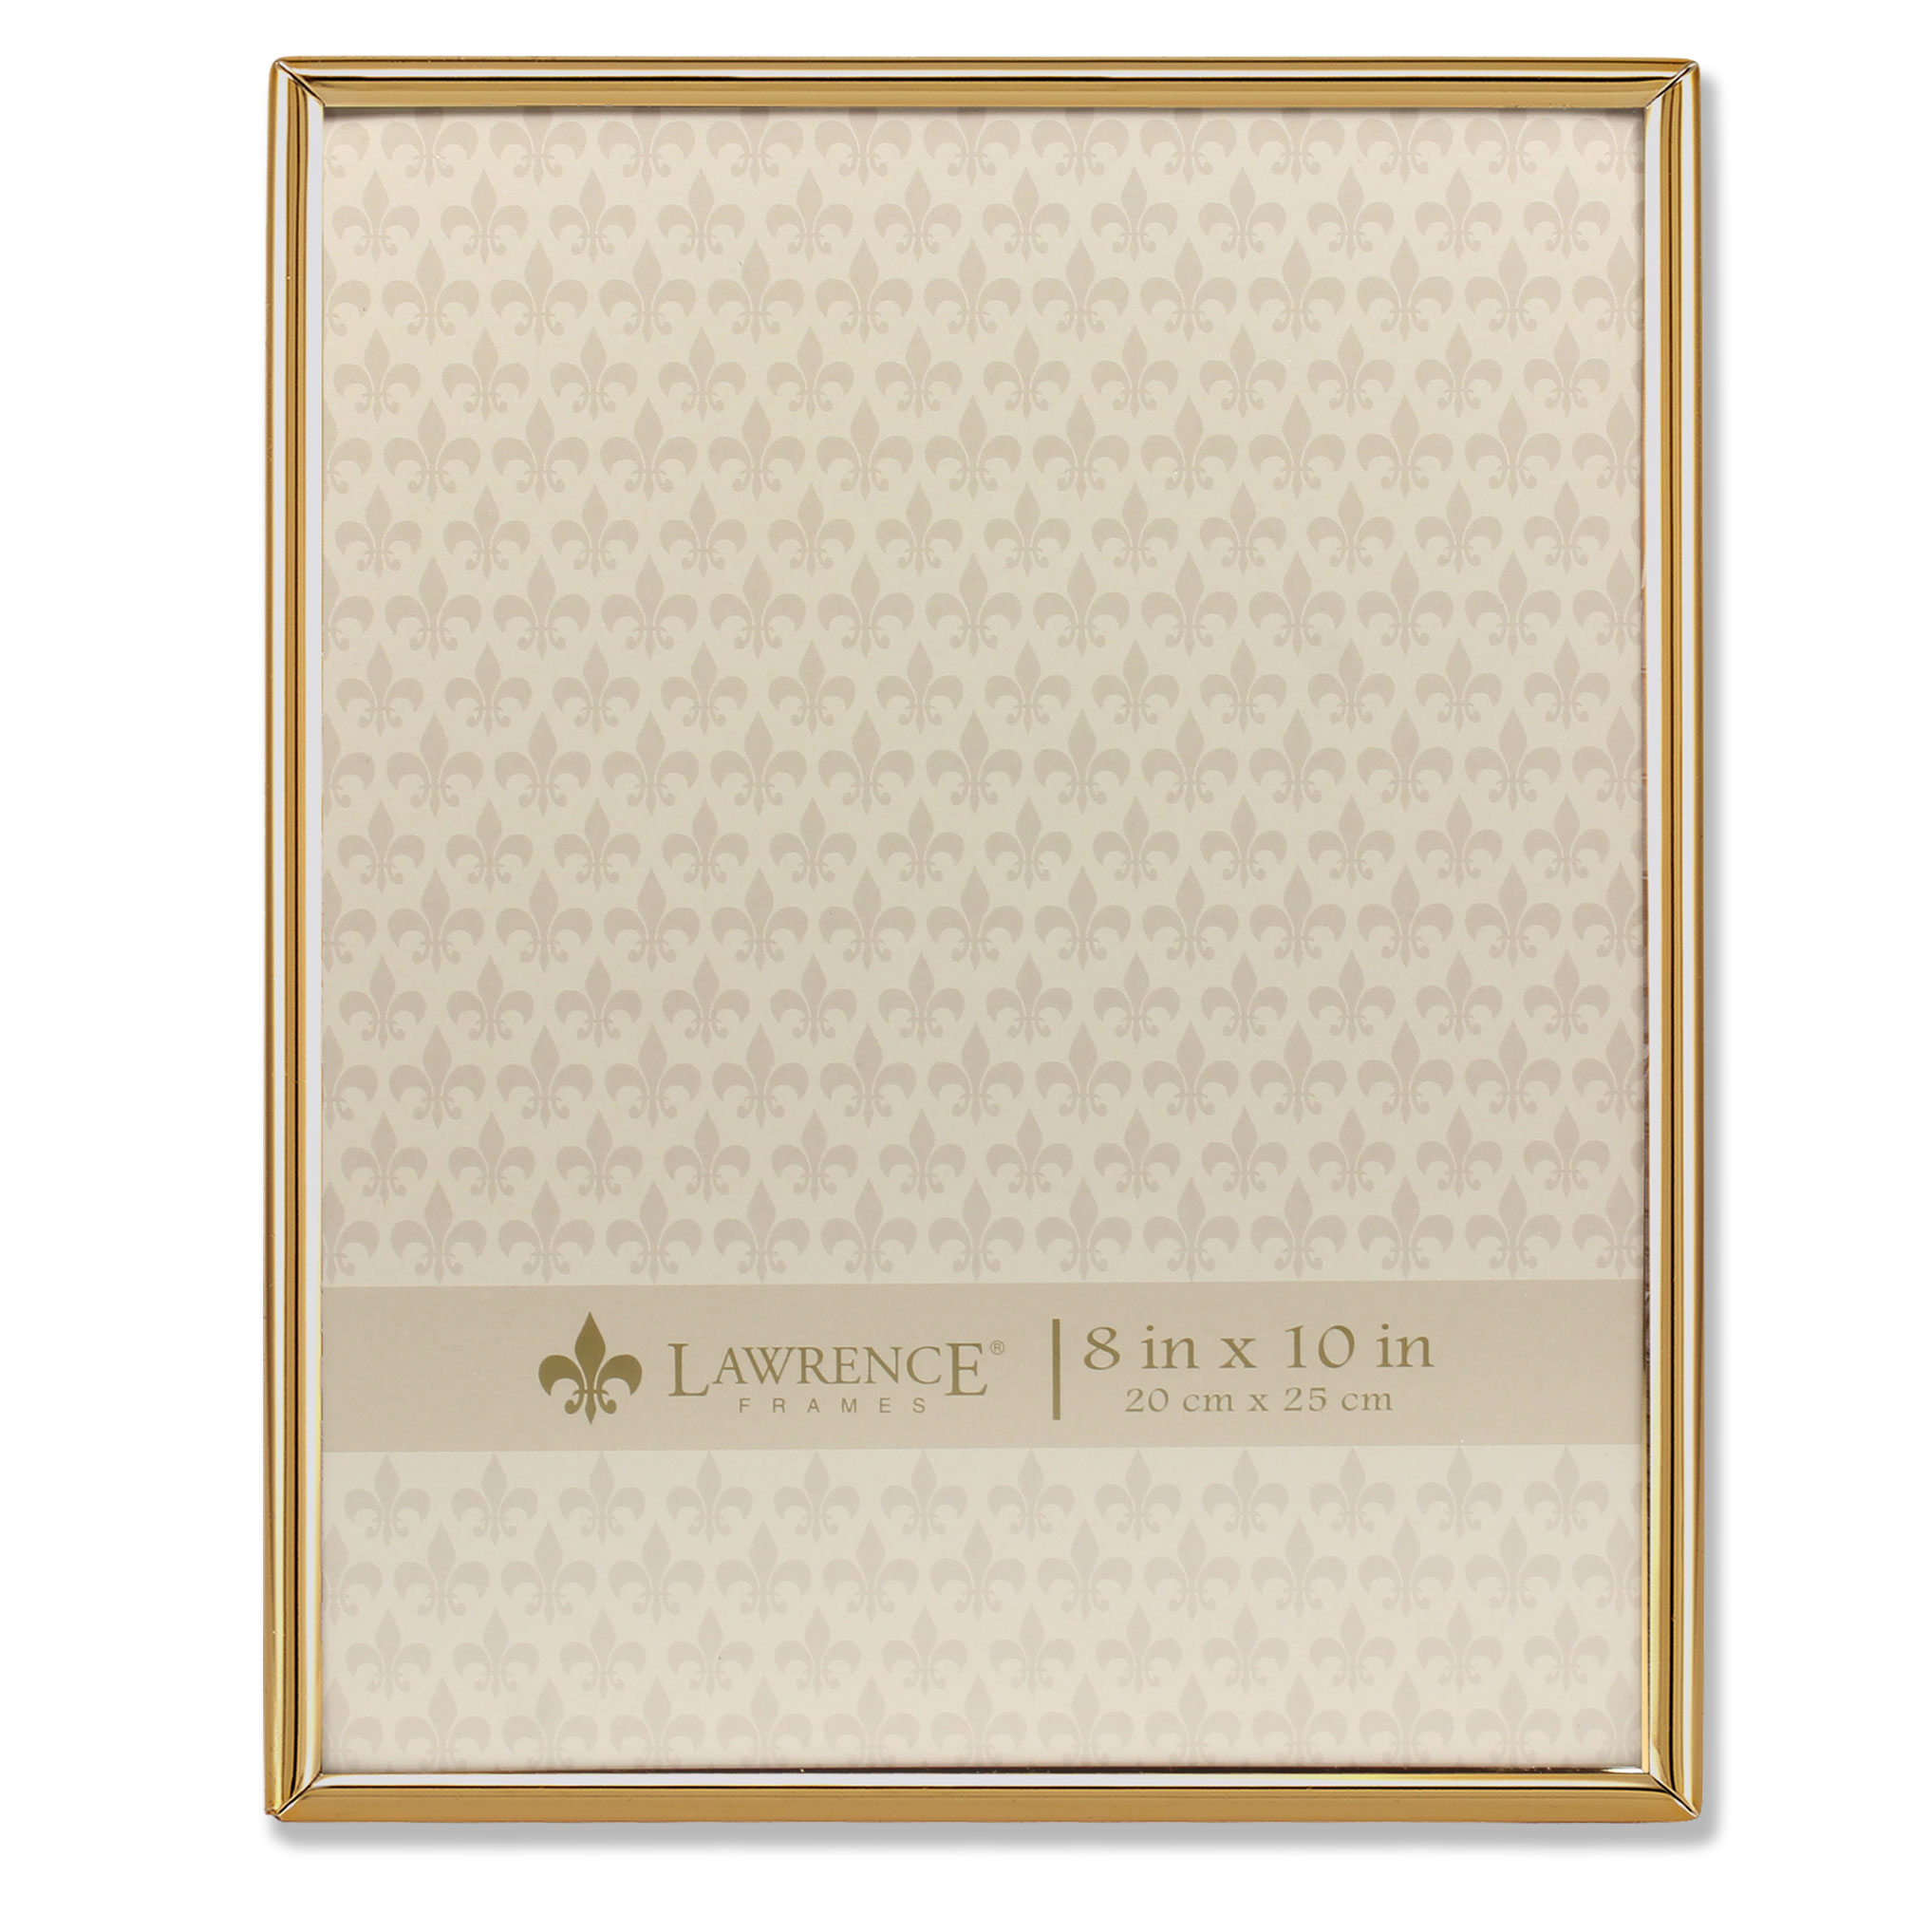 8x10 Simply Gold Metal Picture Frame